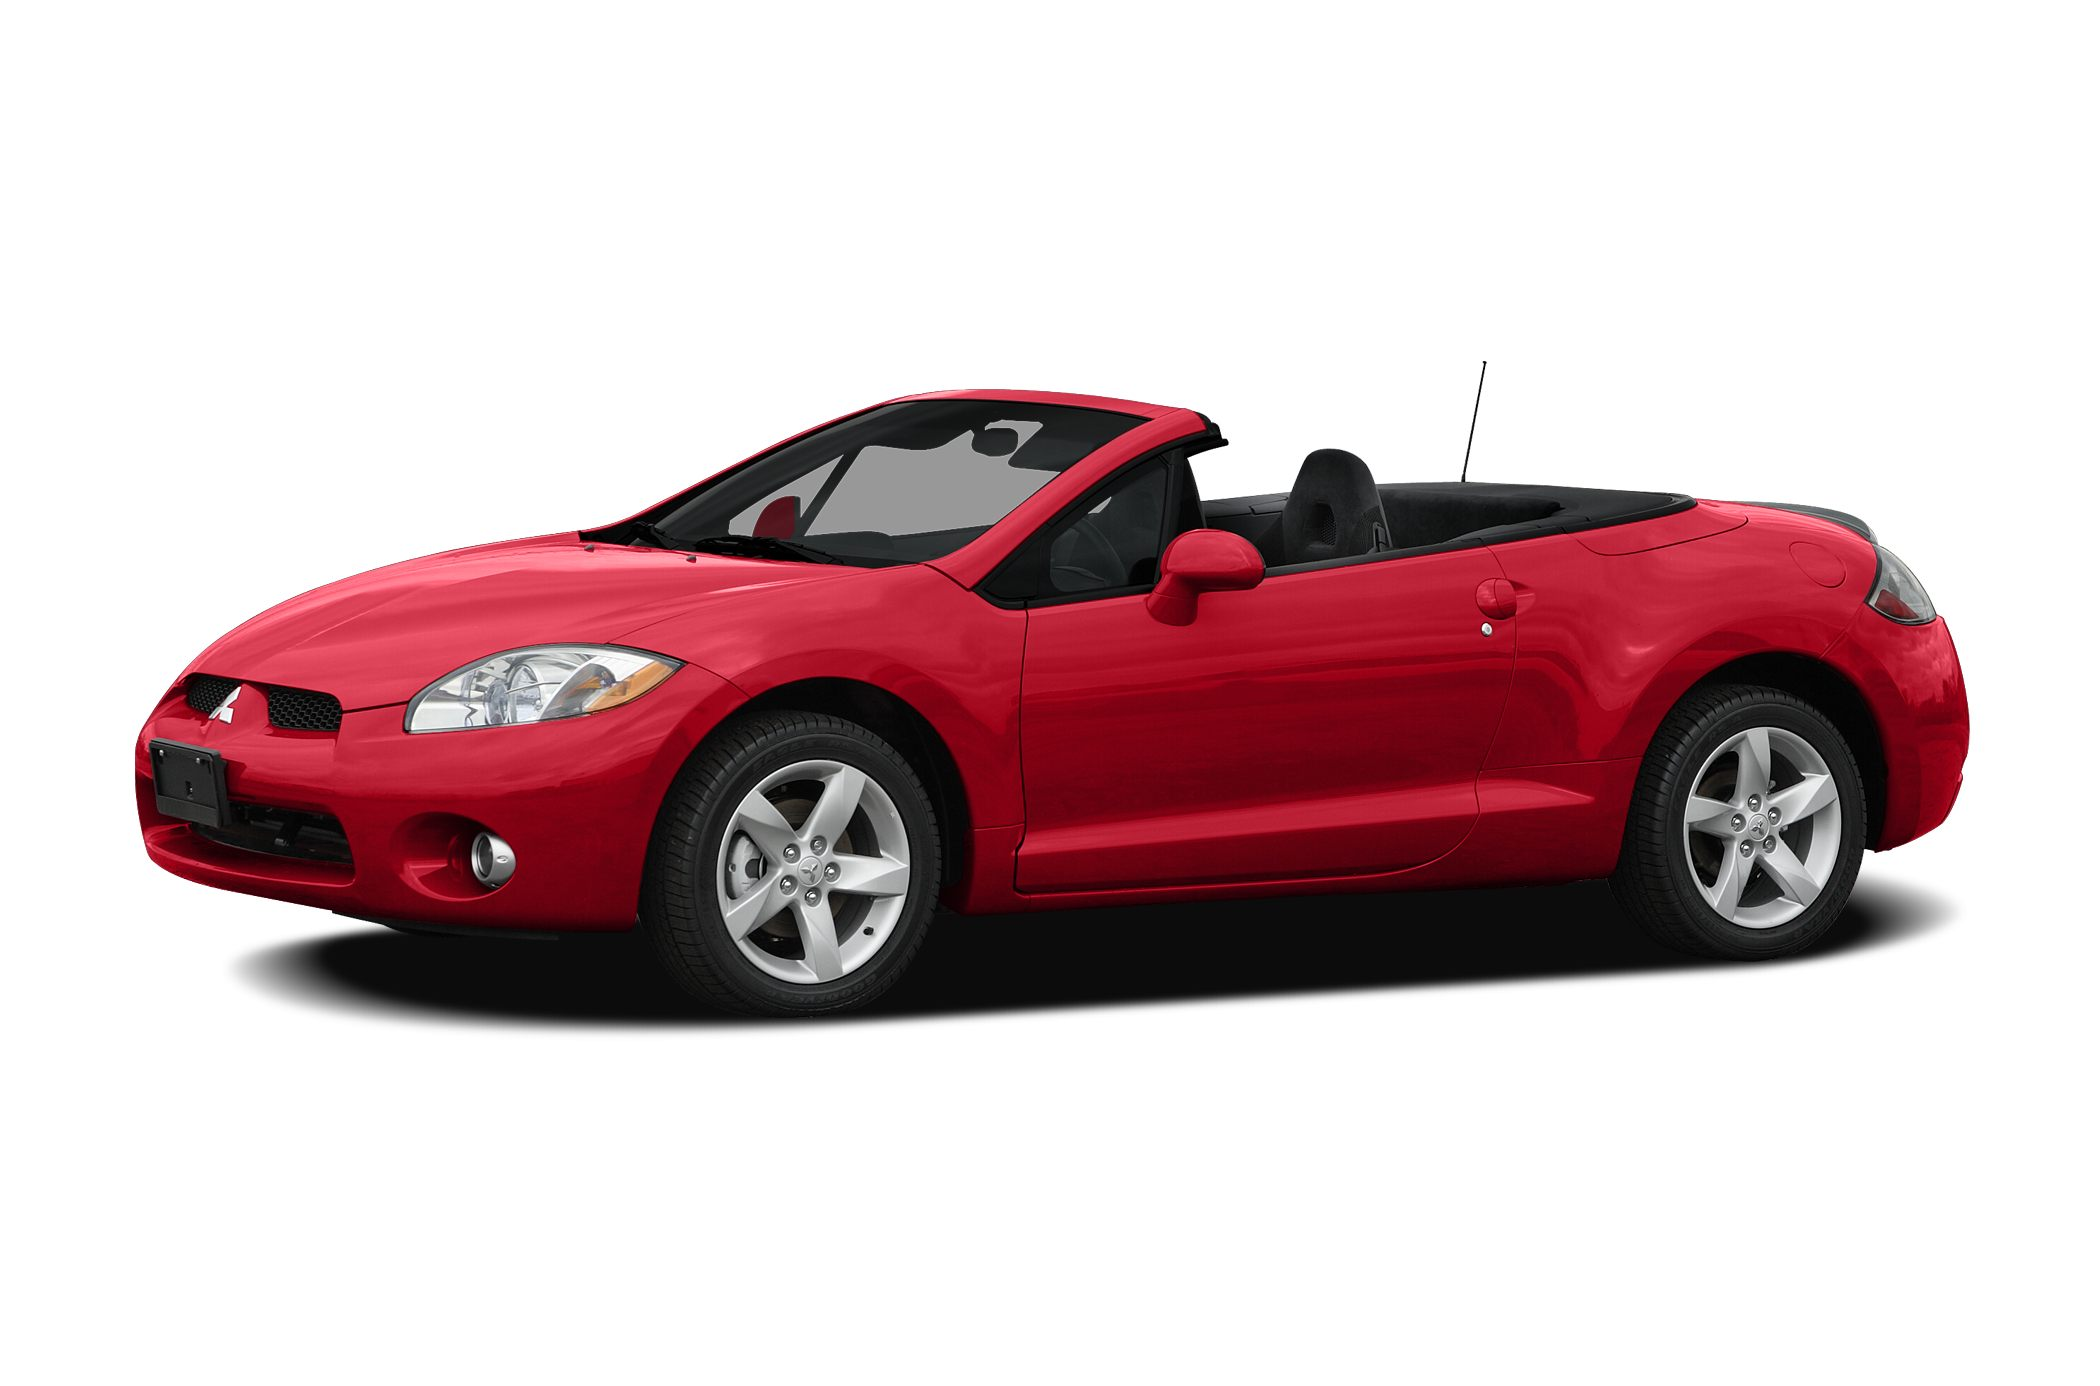 2008 Mitsubishi Eclipse Spyder GT THIS VEHICLE COMES WITH OUR BEST PRICE GUARANTEE FIND A BETTER